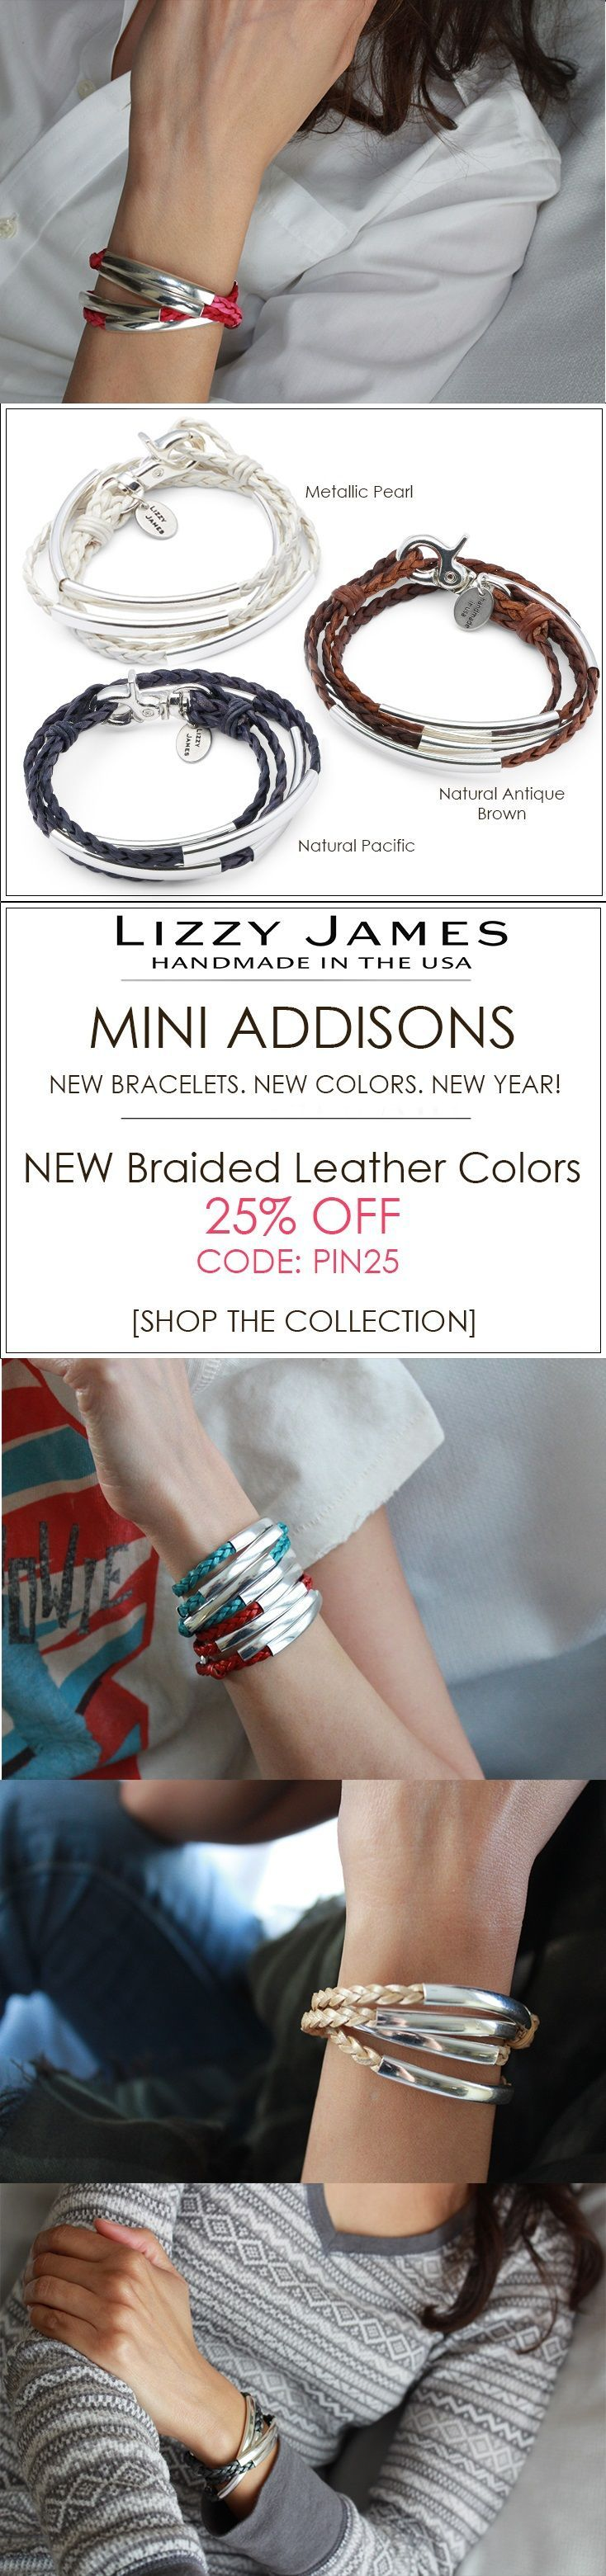 New Wraps. New Colors. New Year!          25% OFF sale + FREE Shipping for all 1st time buyers with coupon code PIN25 - let Lizzy James Jewelry help you color your style this New Year! Featuring braided leather  bracelets that can also be worn as chokers, charm bracelets & necklaces. Our designs fit all wrist sizes from petite to plus size.  Proud to be made in the USA!  #lizzyjames